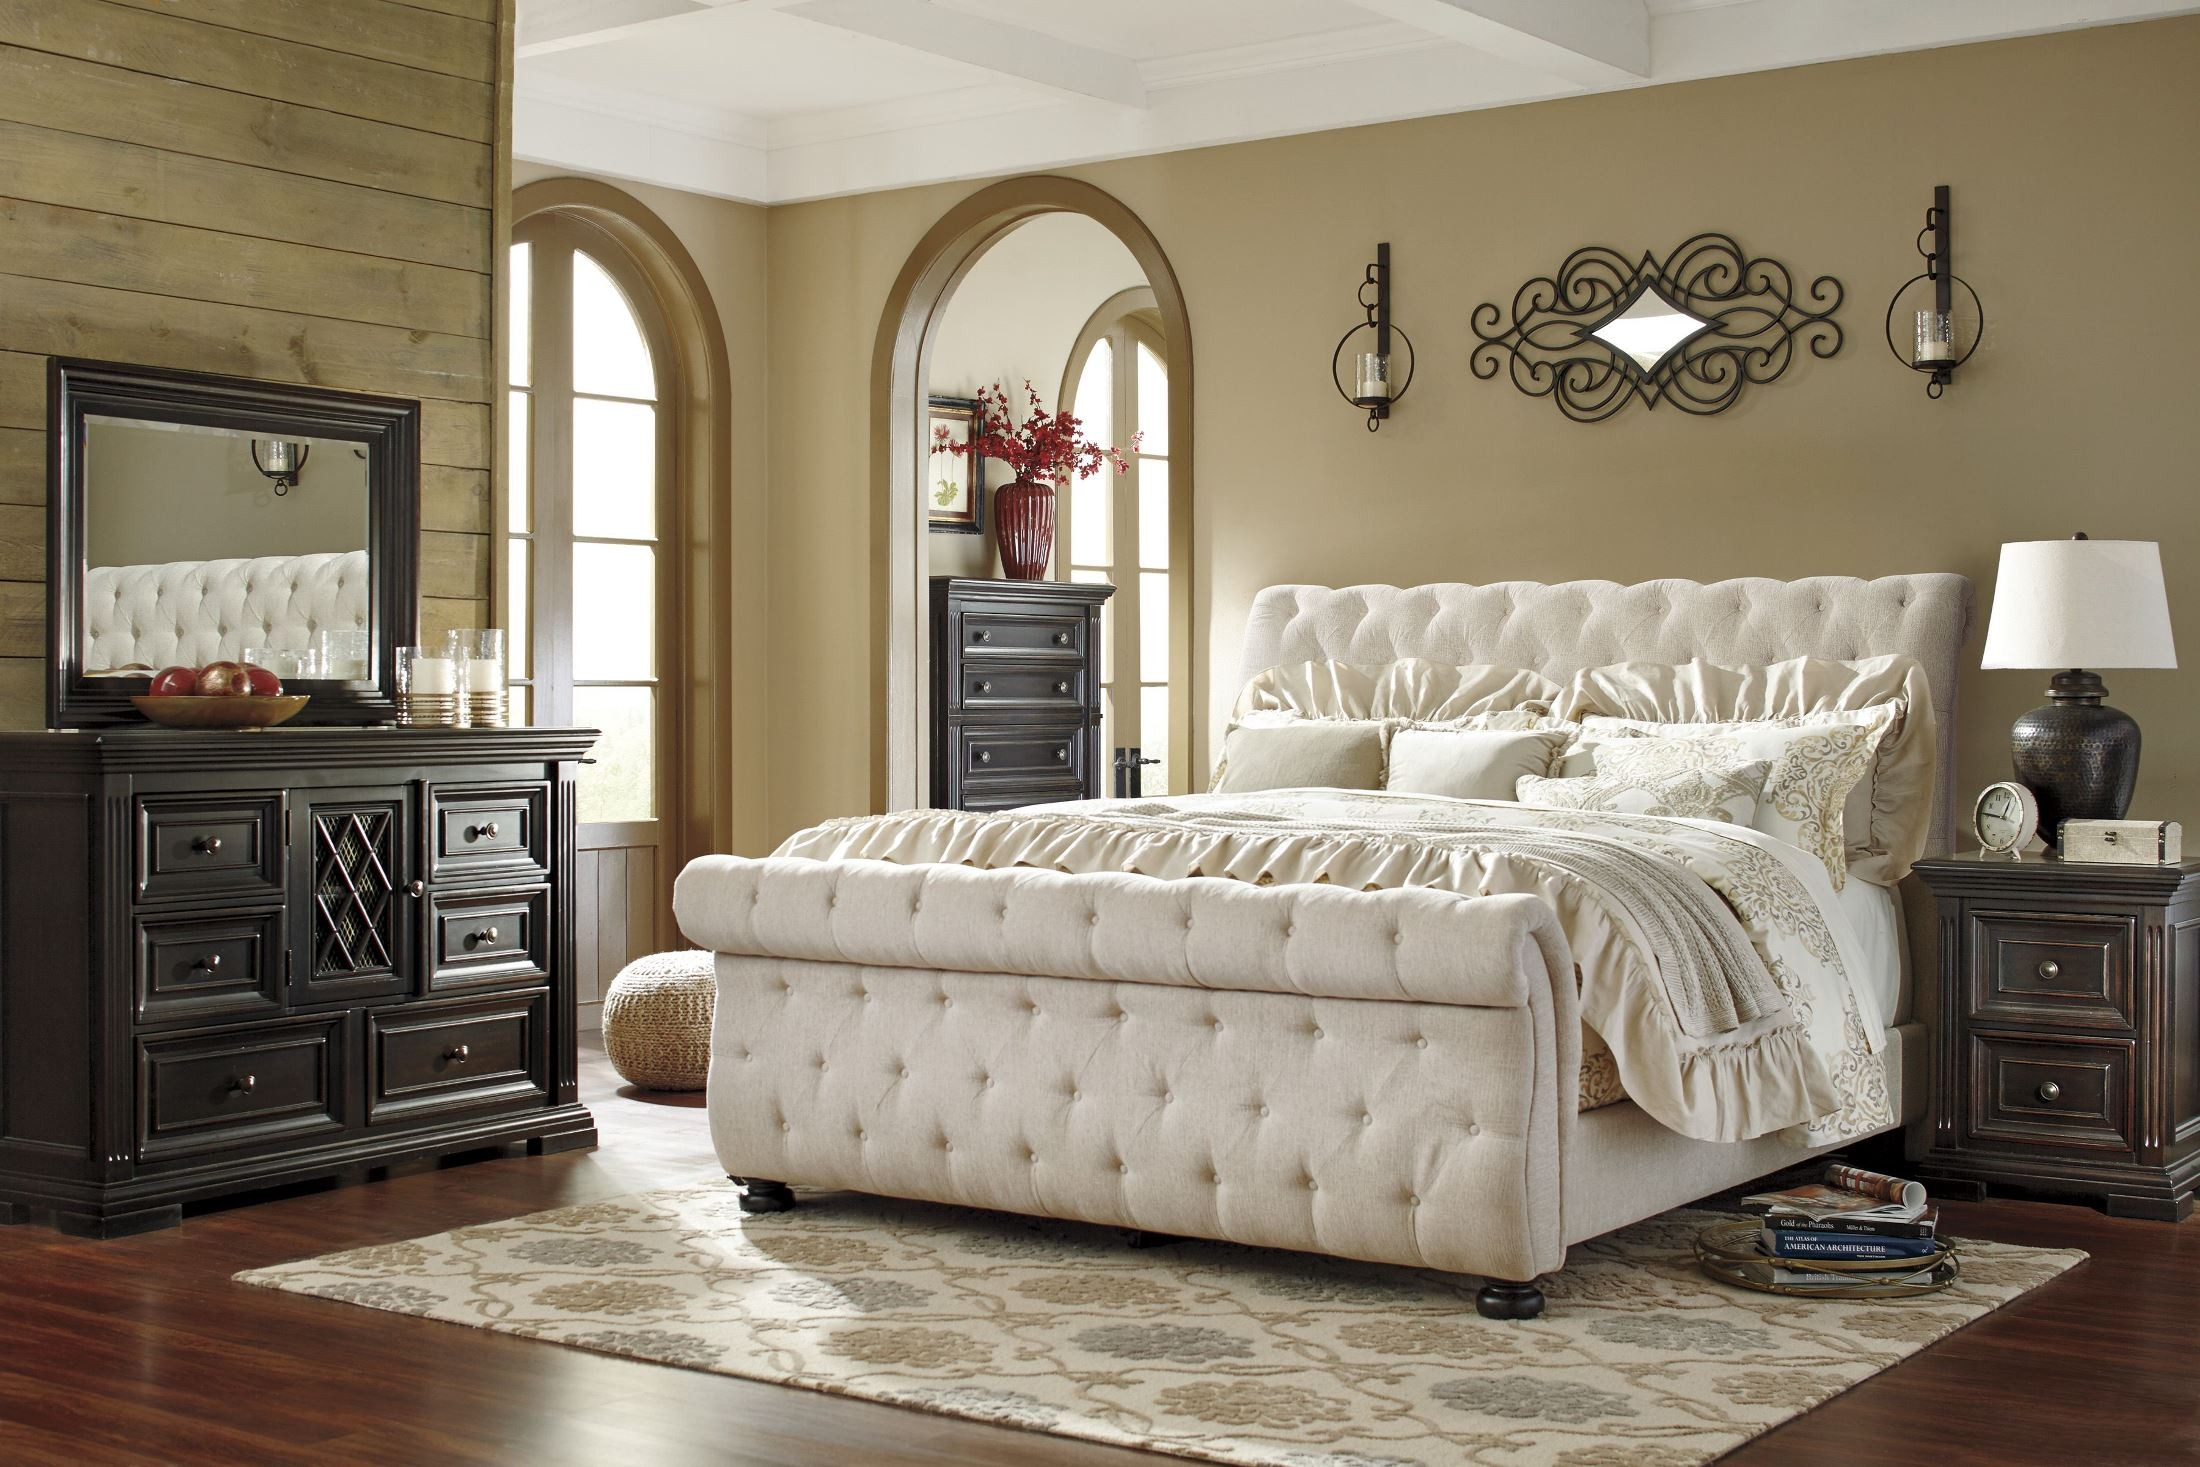 upholstered bedroom sets willenburg linen king upholstered sleigh bed b643 78 76 13698